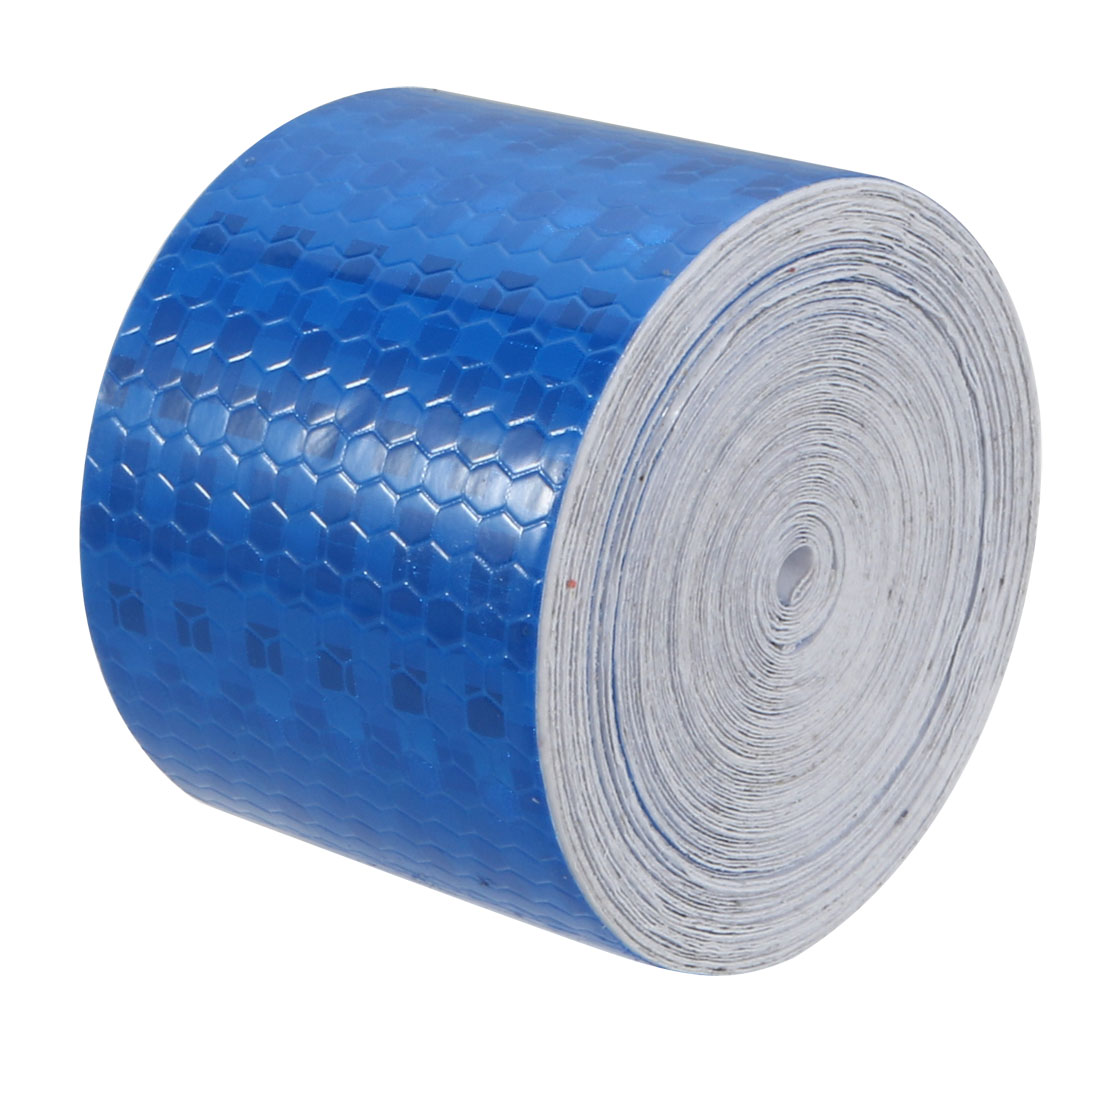 5cm Width 10Meter Length Honeycomb Adhesive Reflective Warning Tape Blue